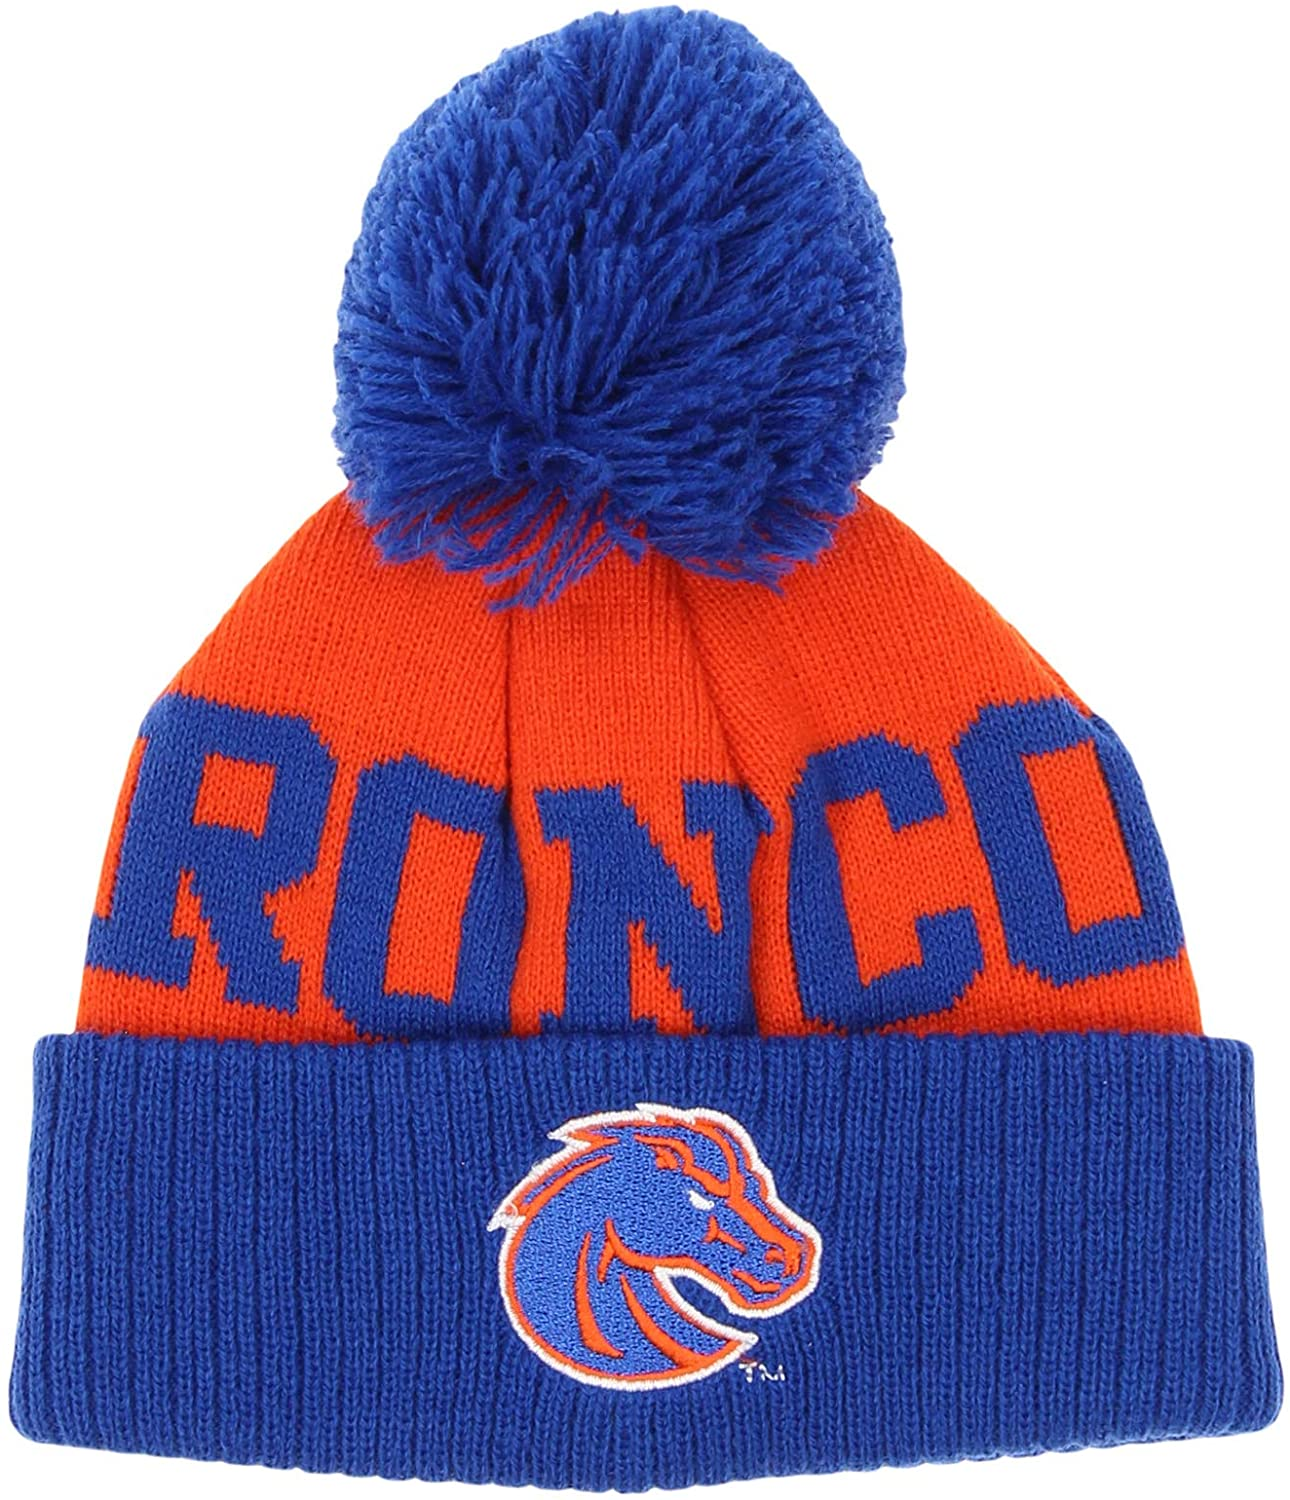 NCAA Infants Boise State Broncos Jacquard Cuffed Knit Pom Hat, 12 Months